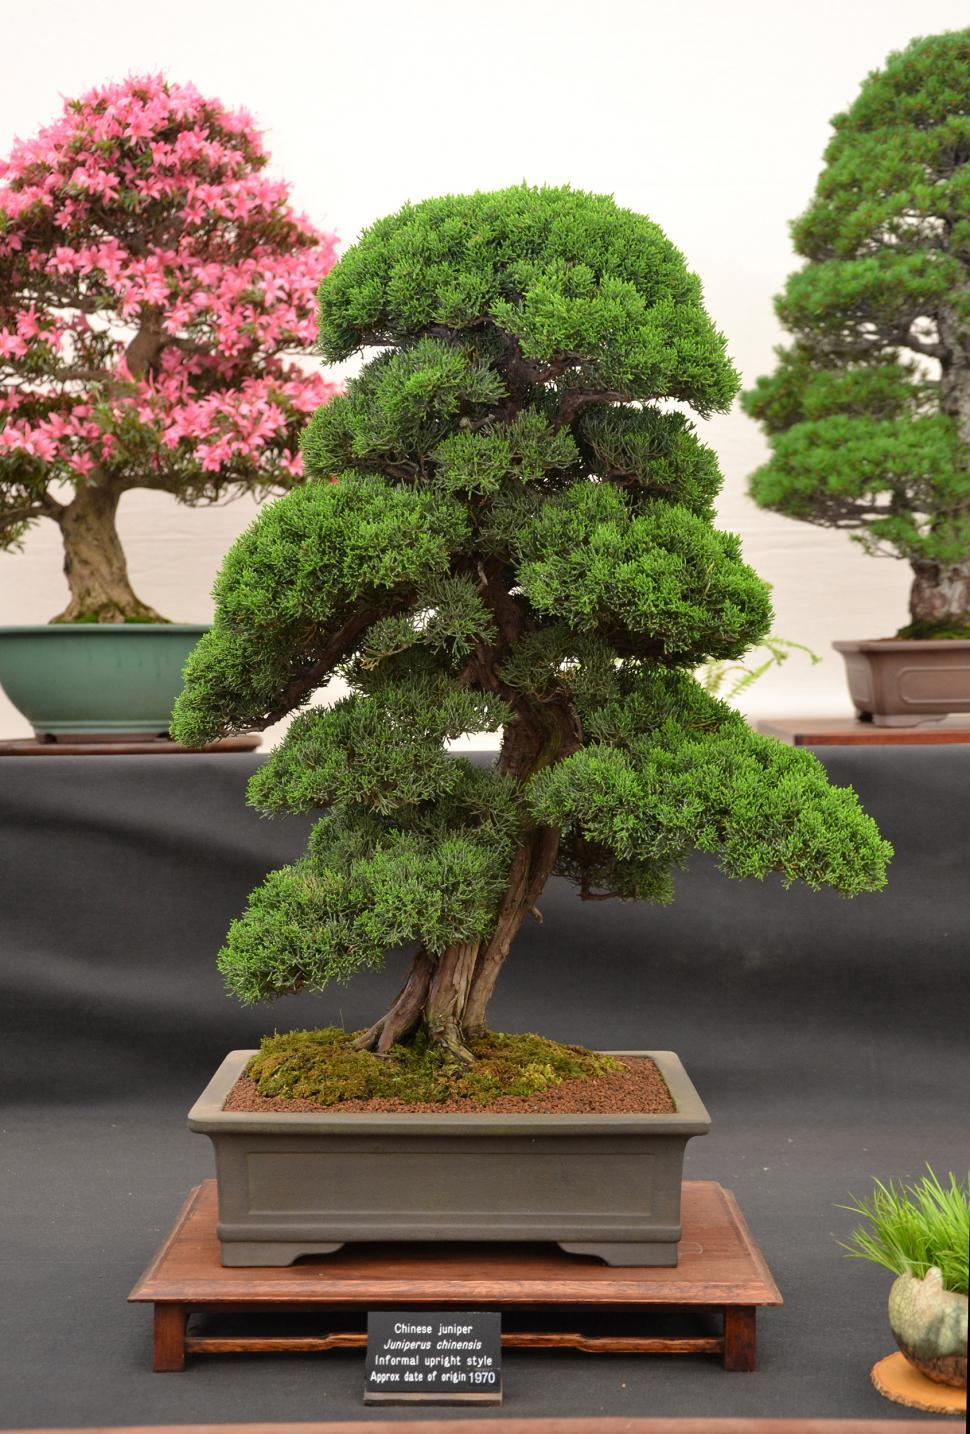 Download Free Stock HD Photo of Chinese juniper bonsai Online